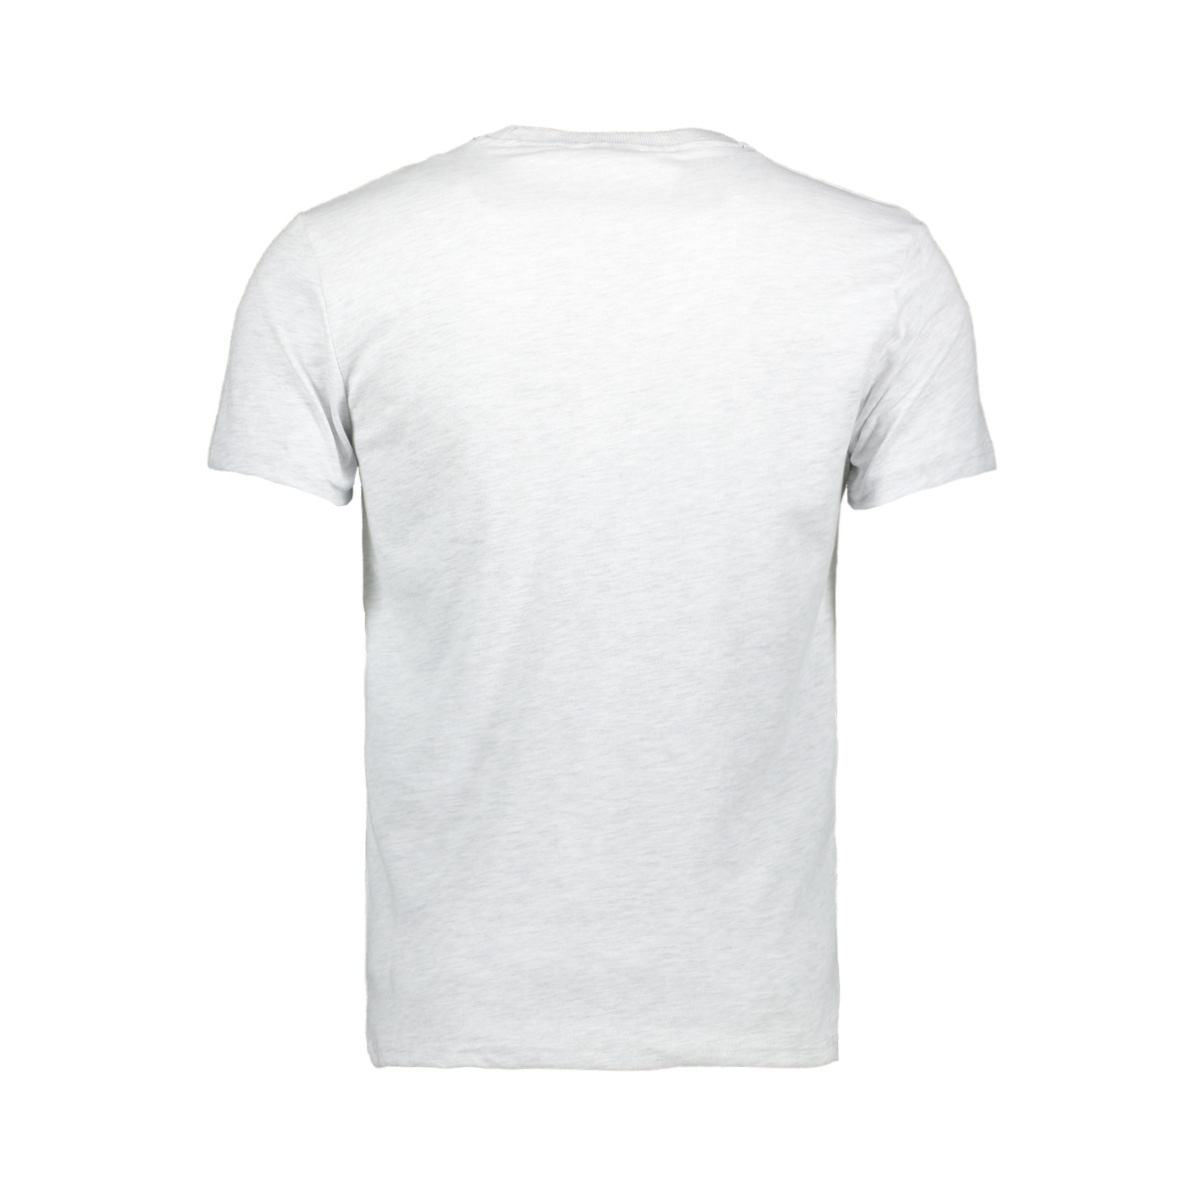 goods heat sealed tee m1000107a superdry t-shirt ice marl